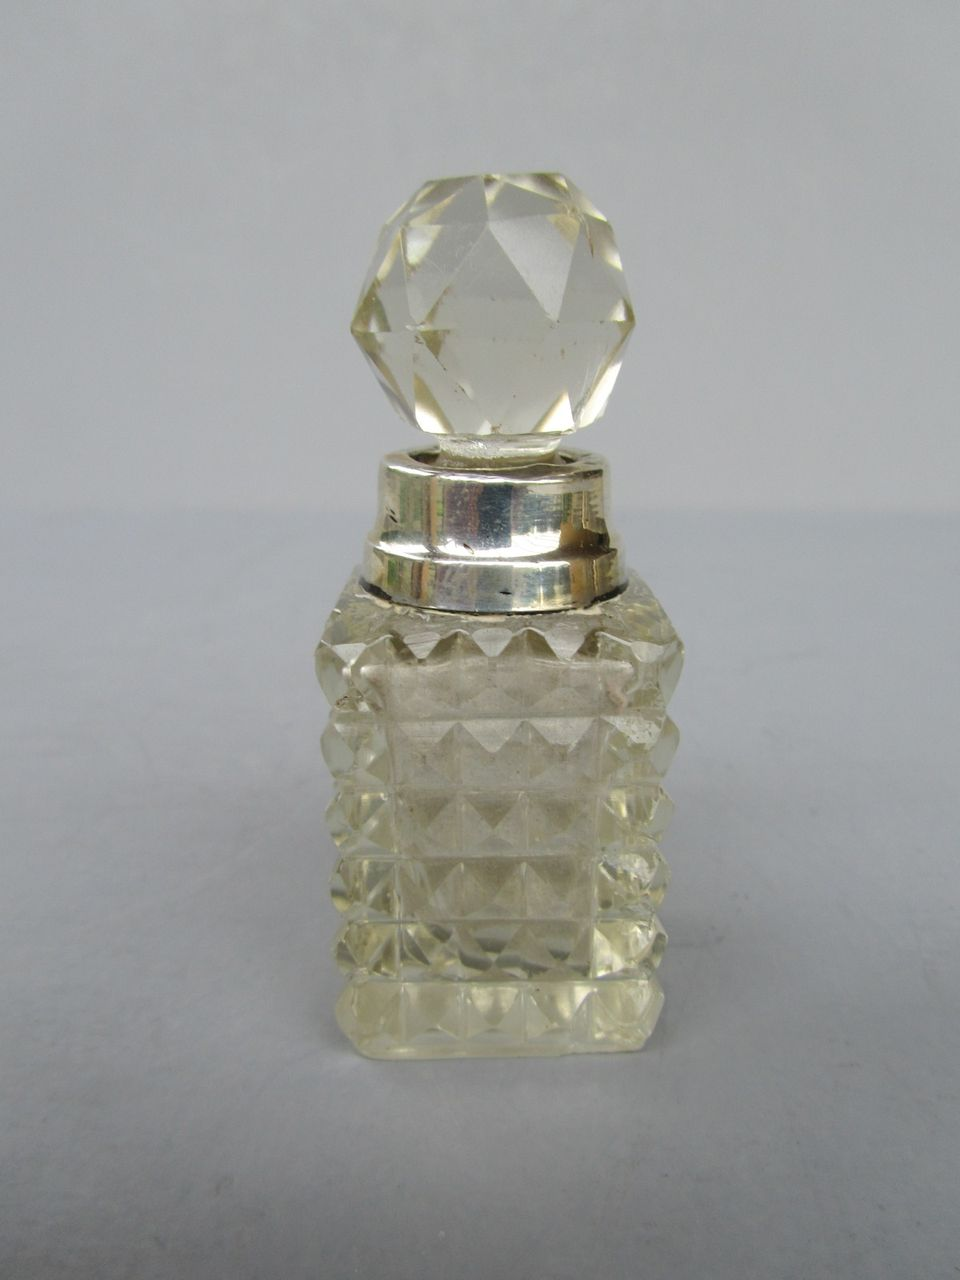 Antique English Sterling Silver and Cut Glass Perfume Bottle - London 1910